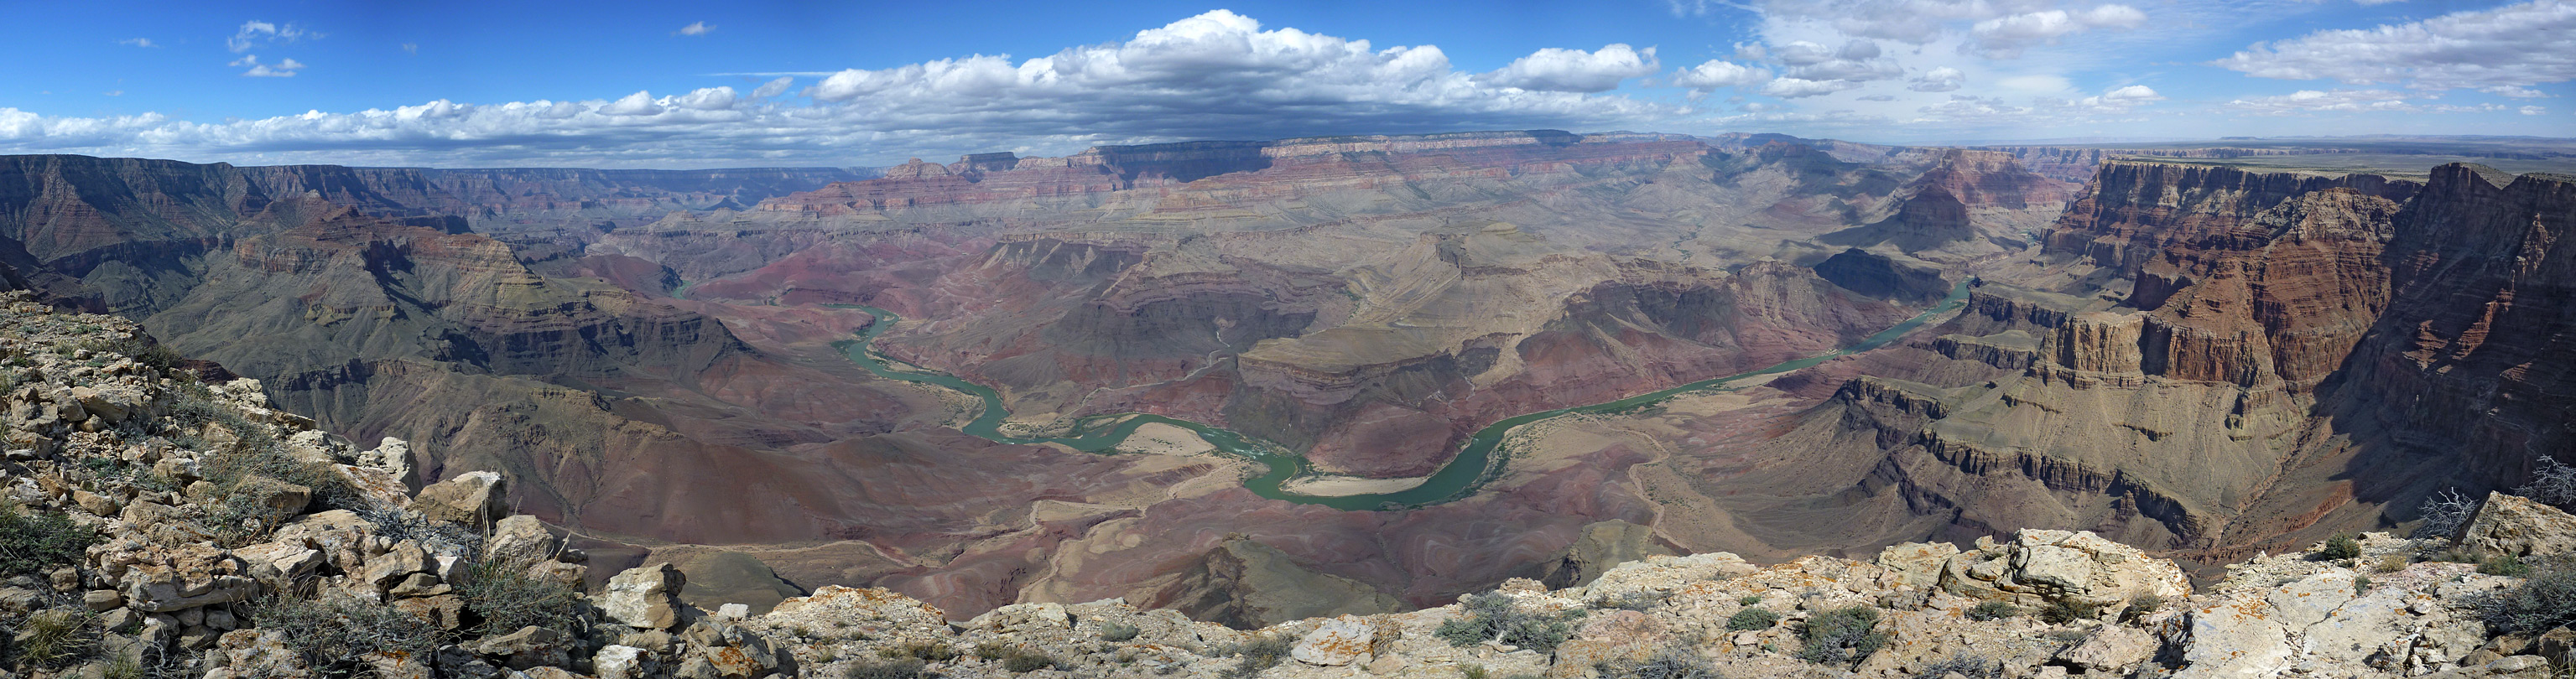 Comanche Point panorama: Comanche Point Trail, Grand Canyon National ...